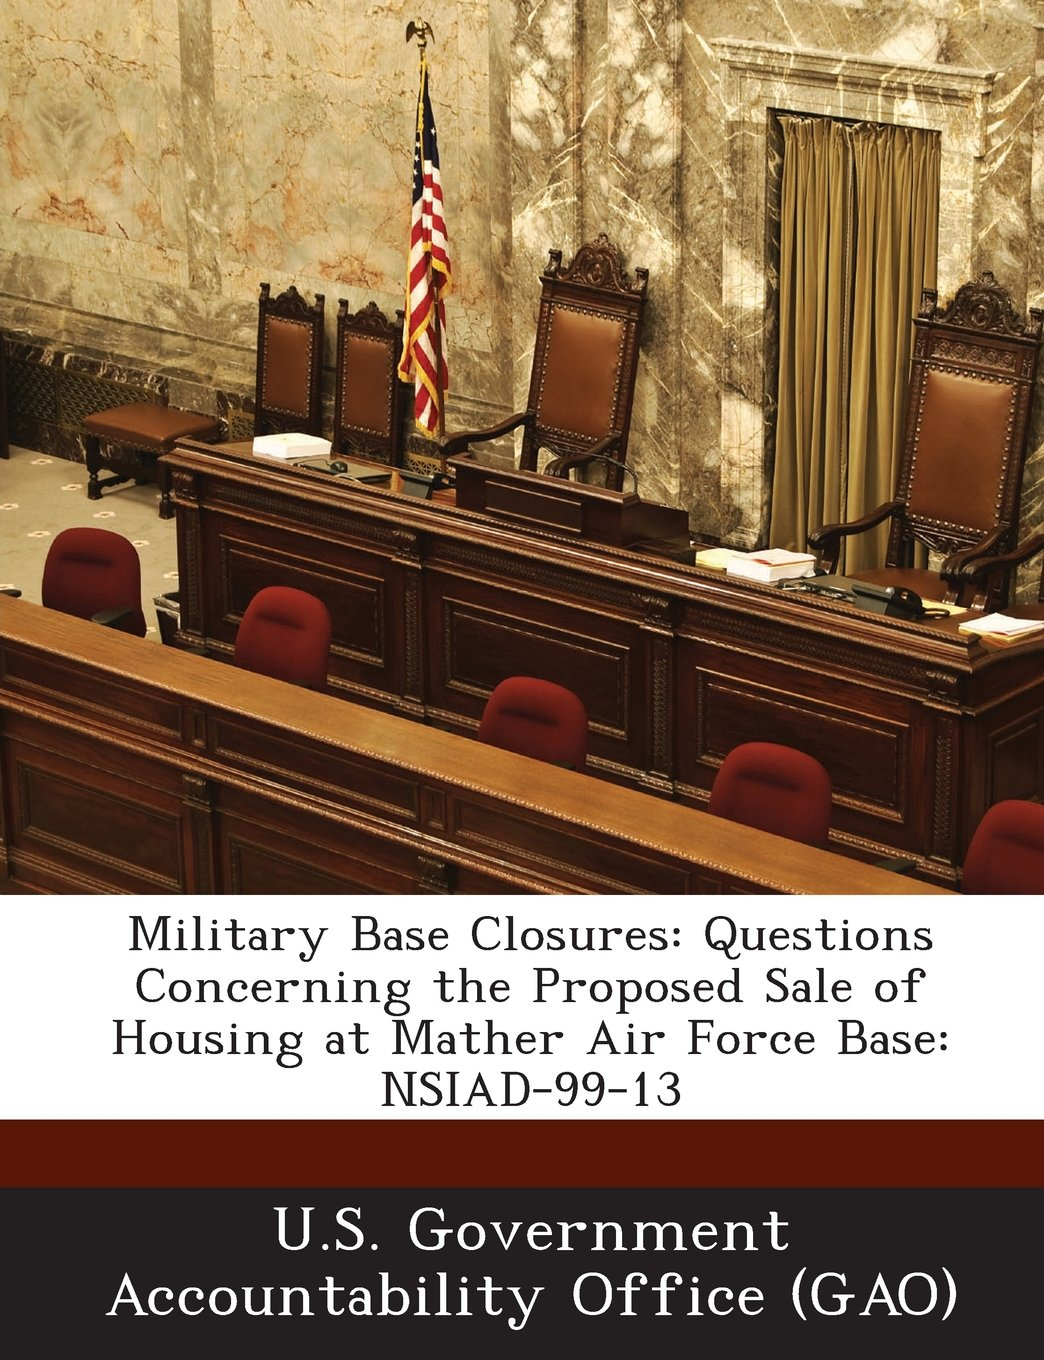 Military Base Closures: Questions Concerning the Proposed Sale of